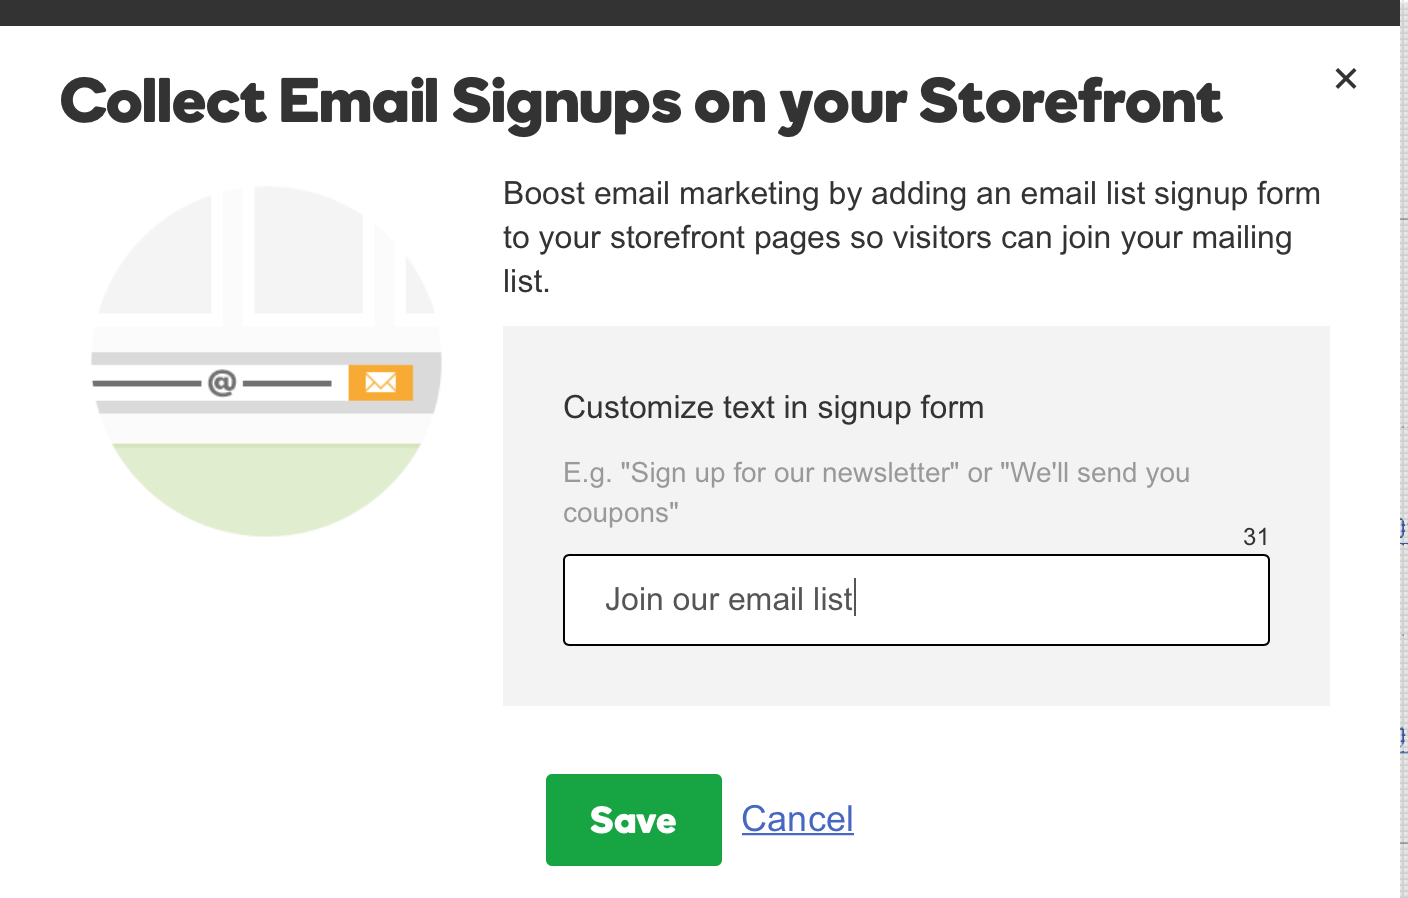 GoDaddy Online Store Email Sign Ups